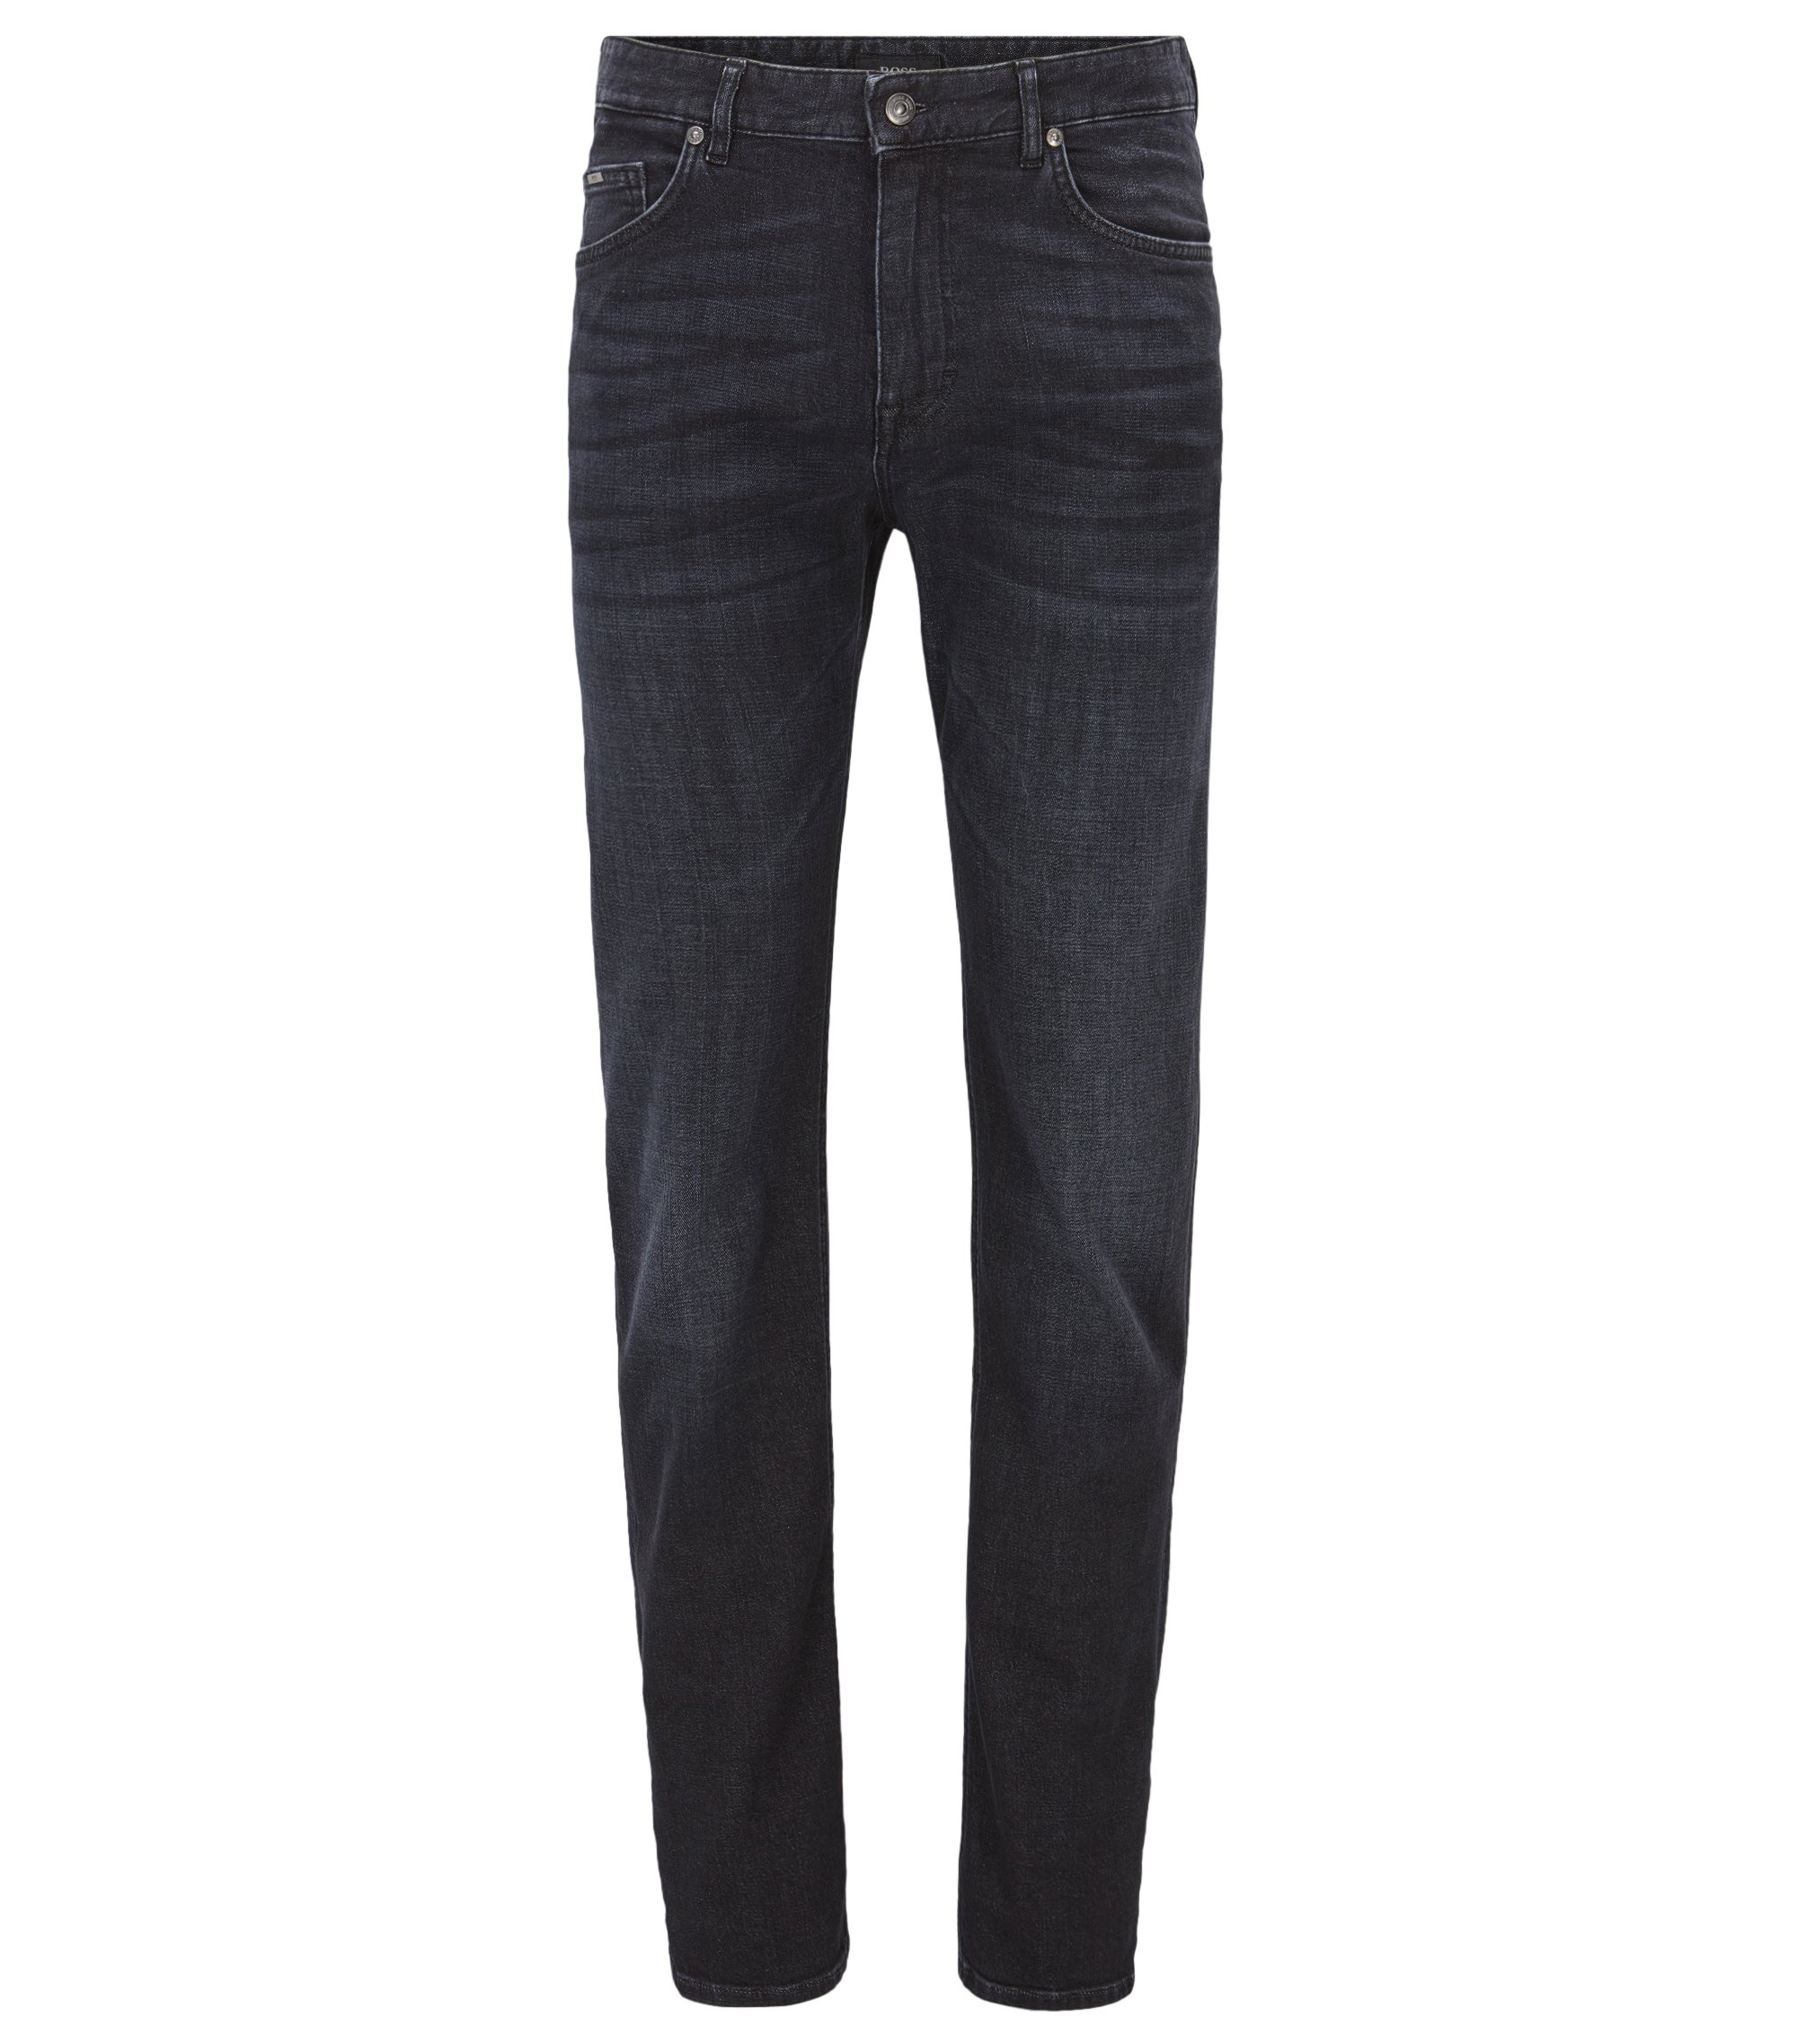 Jeans relaxed fit in denim effetto cashmere, Grigio antracite